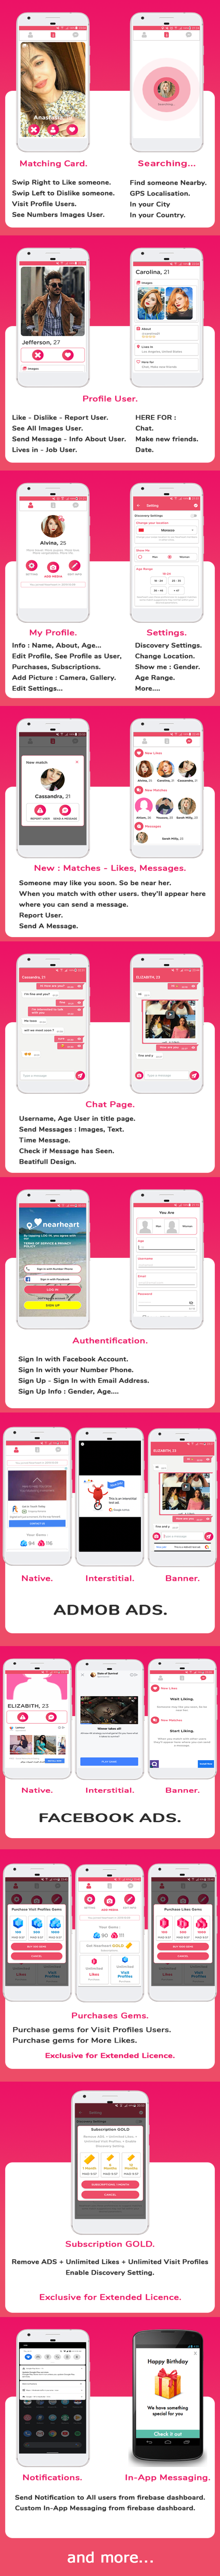 Nearheart - Android Dating App with Facebook & Admob Ads, Subscriptions, Purchases v1.1 - 2